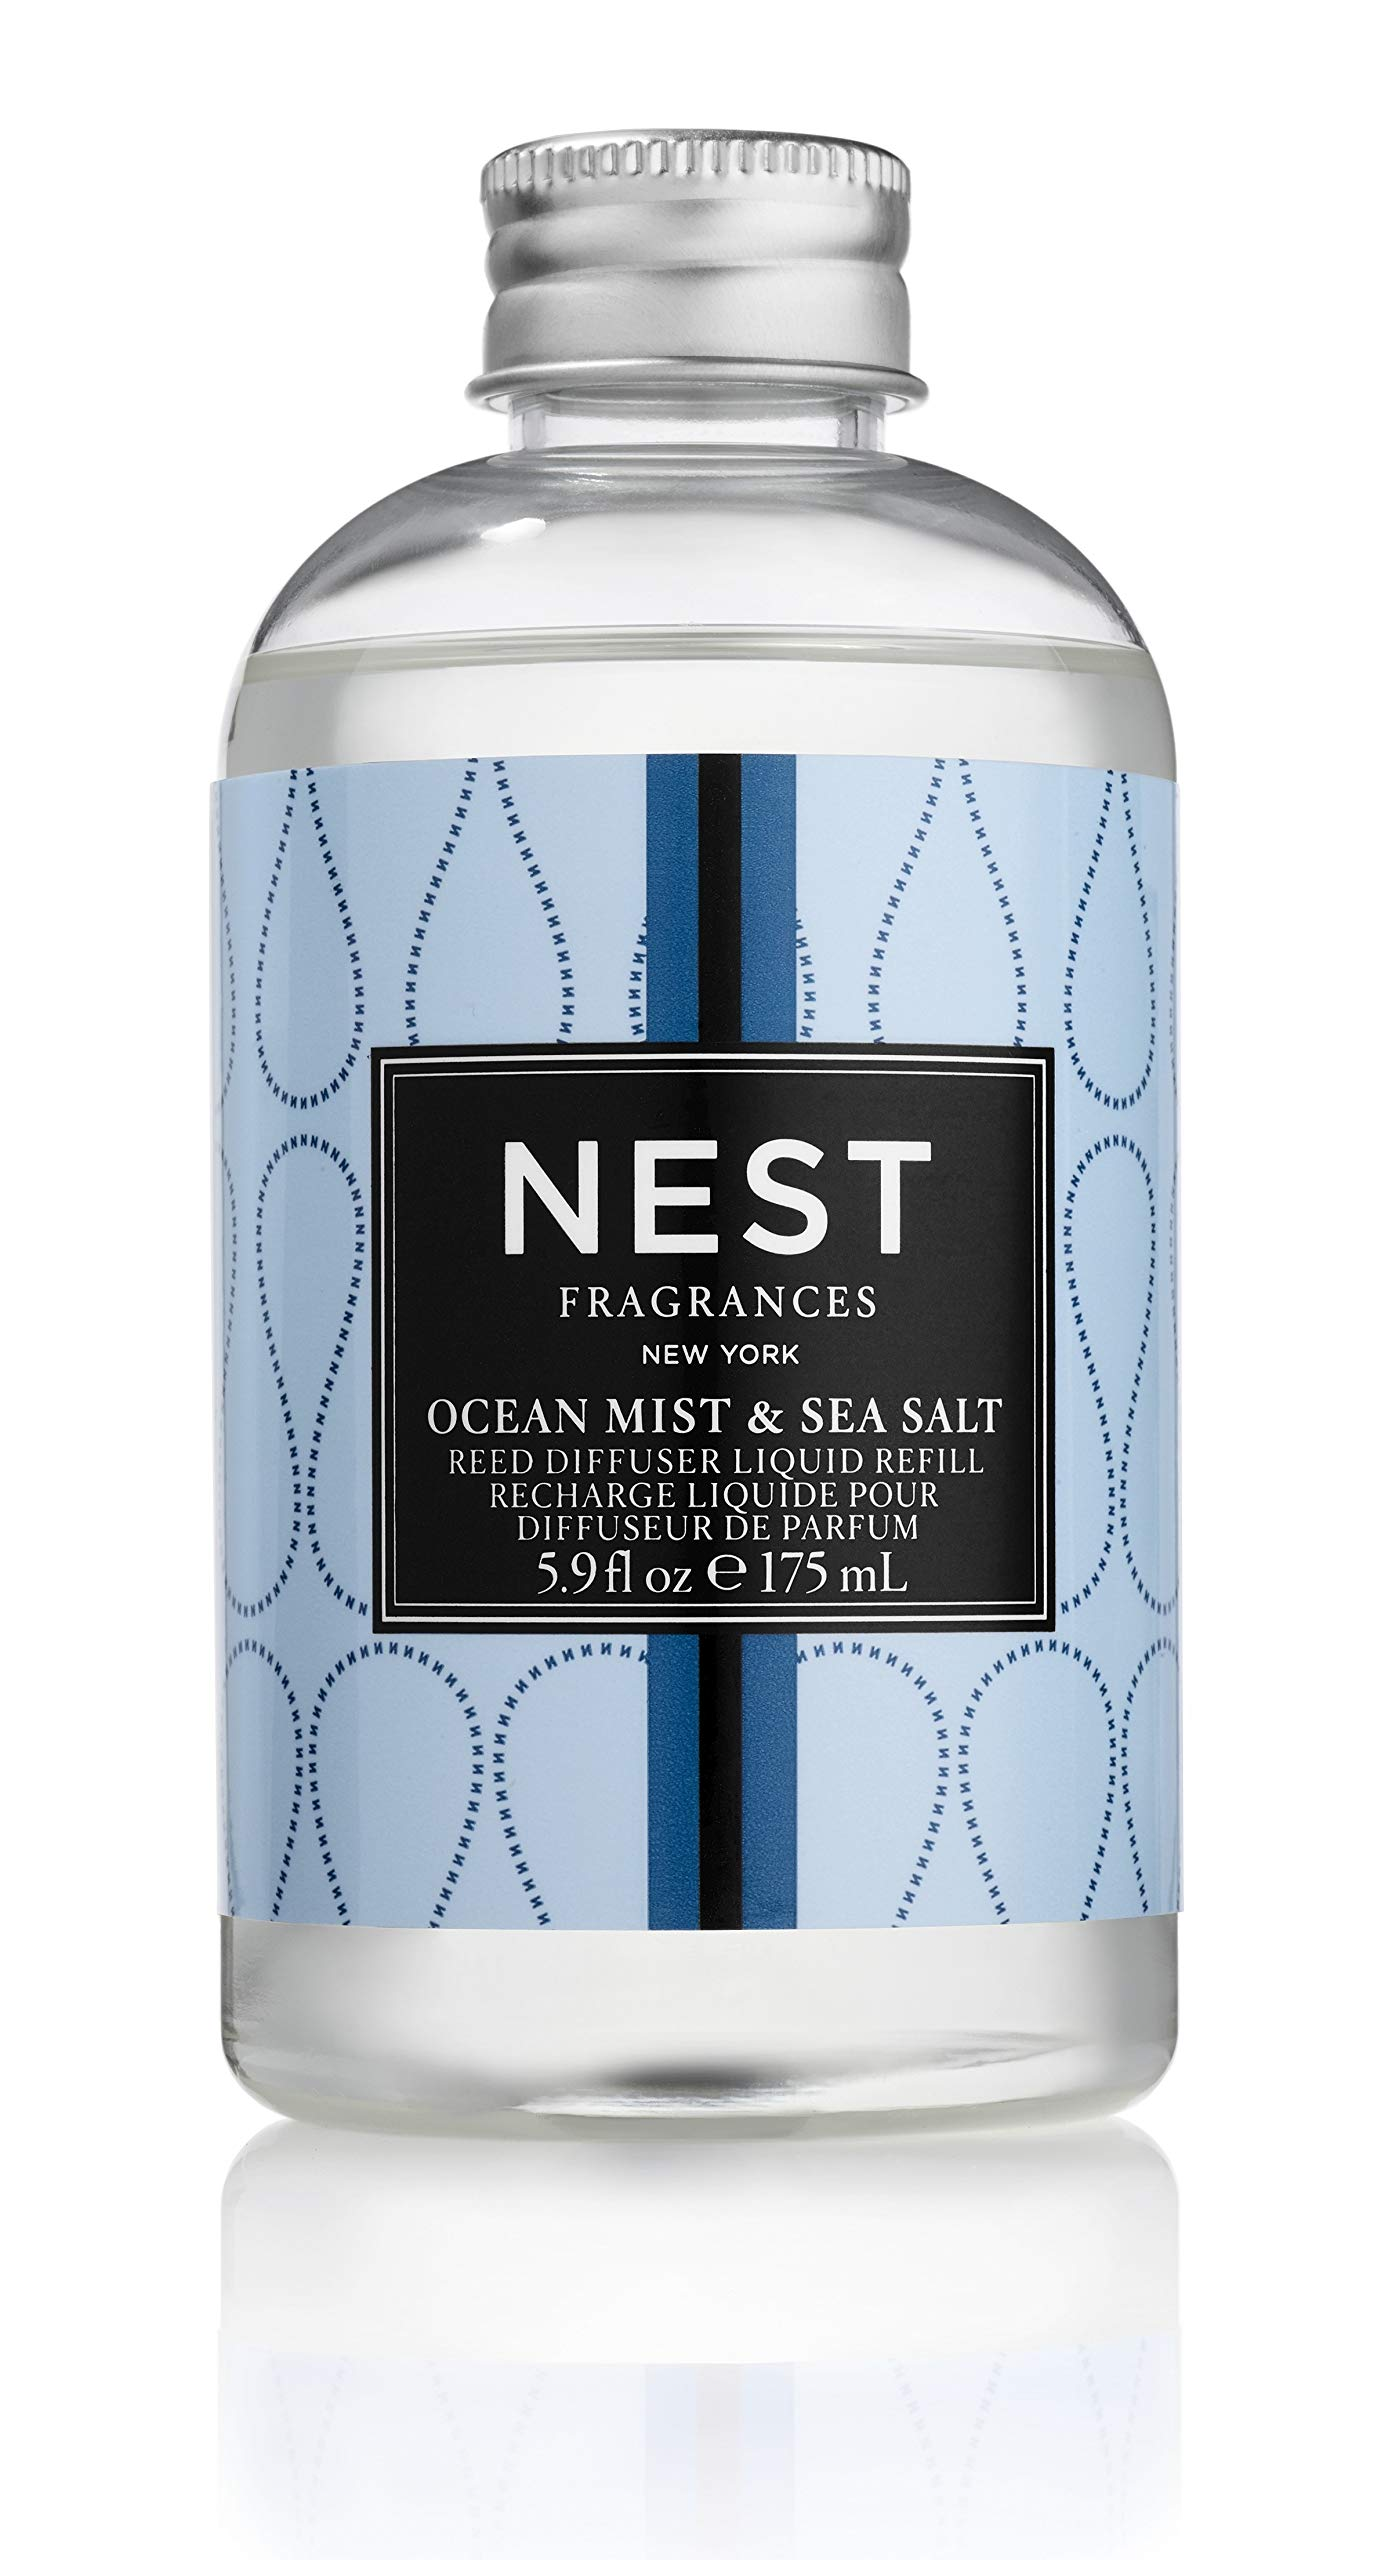 NEST Fragrances Ocean Mist & Sea Salt Reed Diffuser Liquid Refill by NEST Fragrances